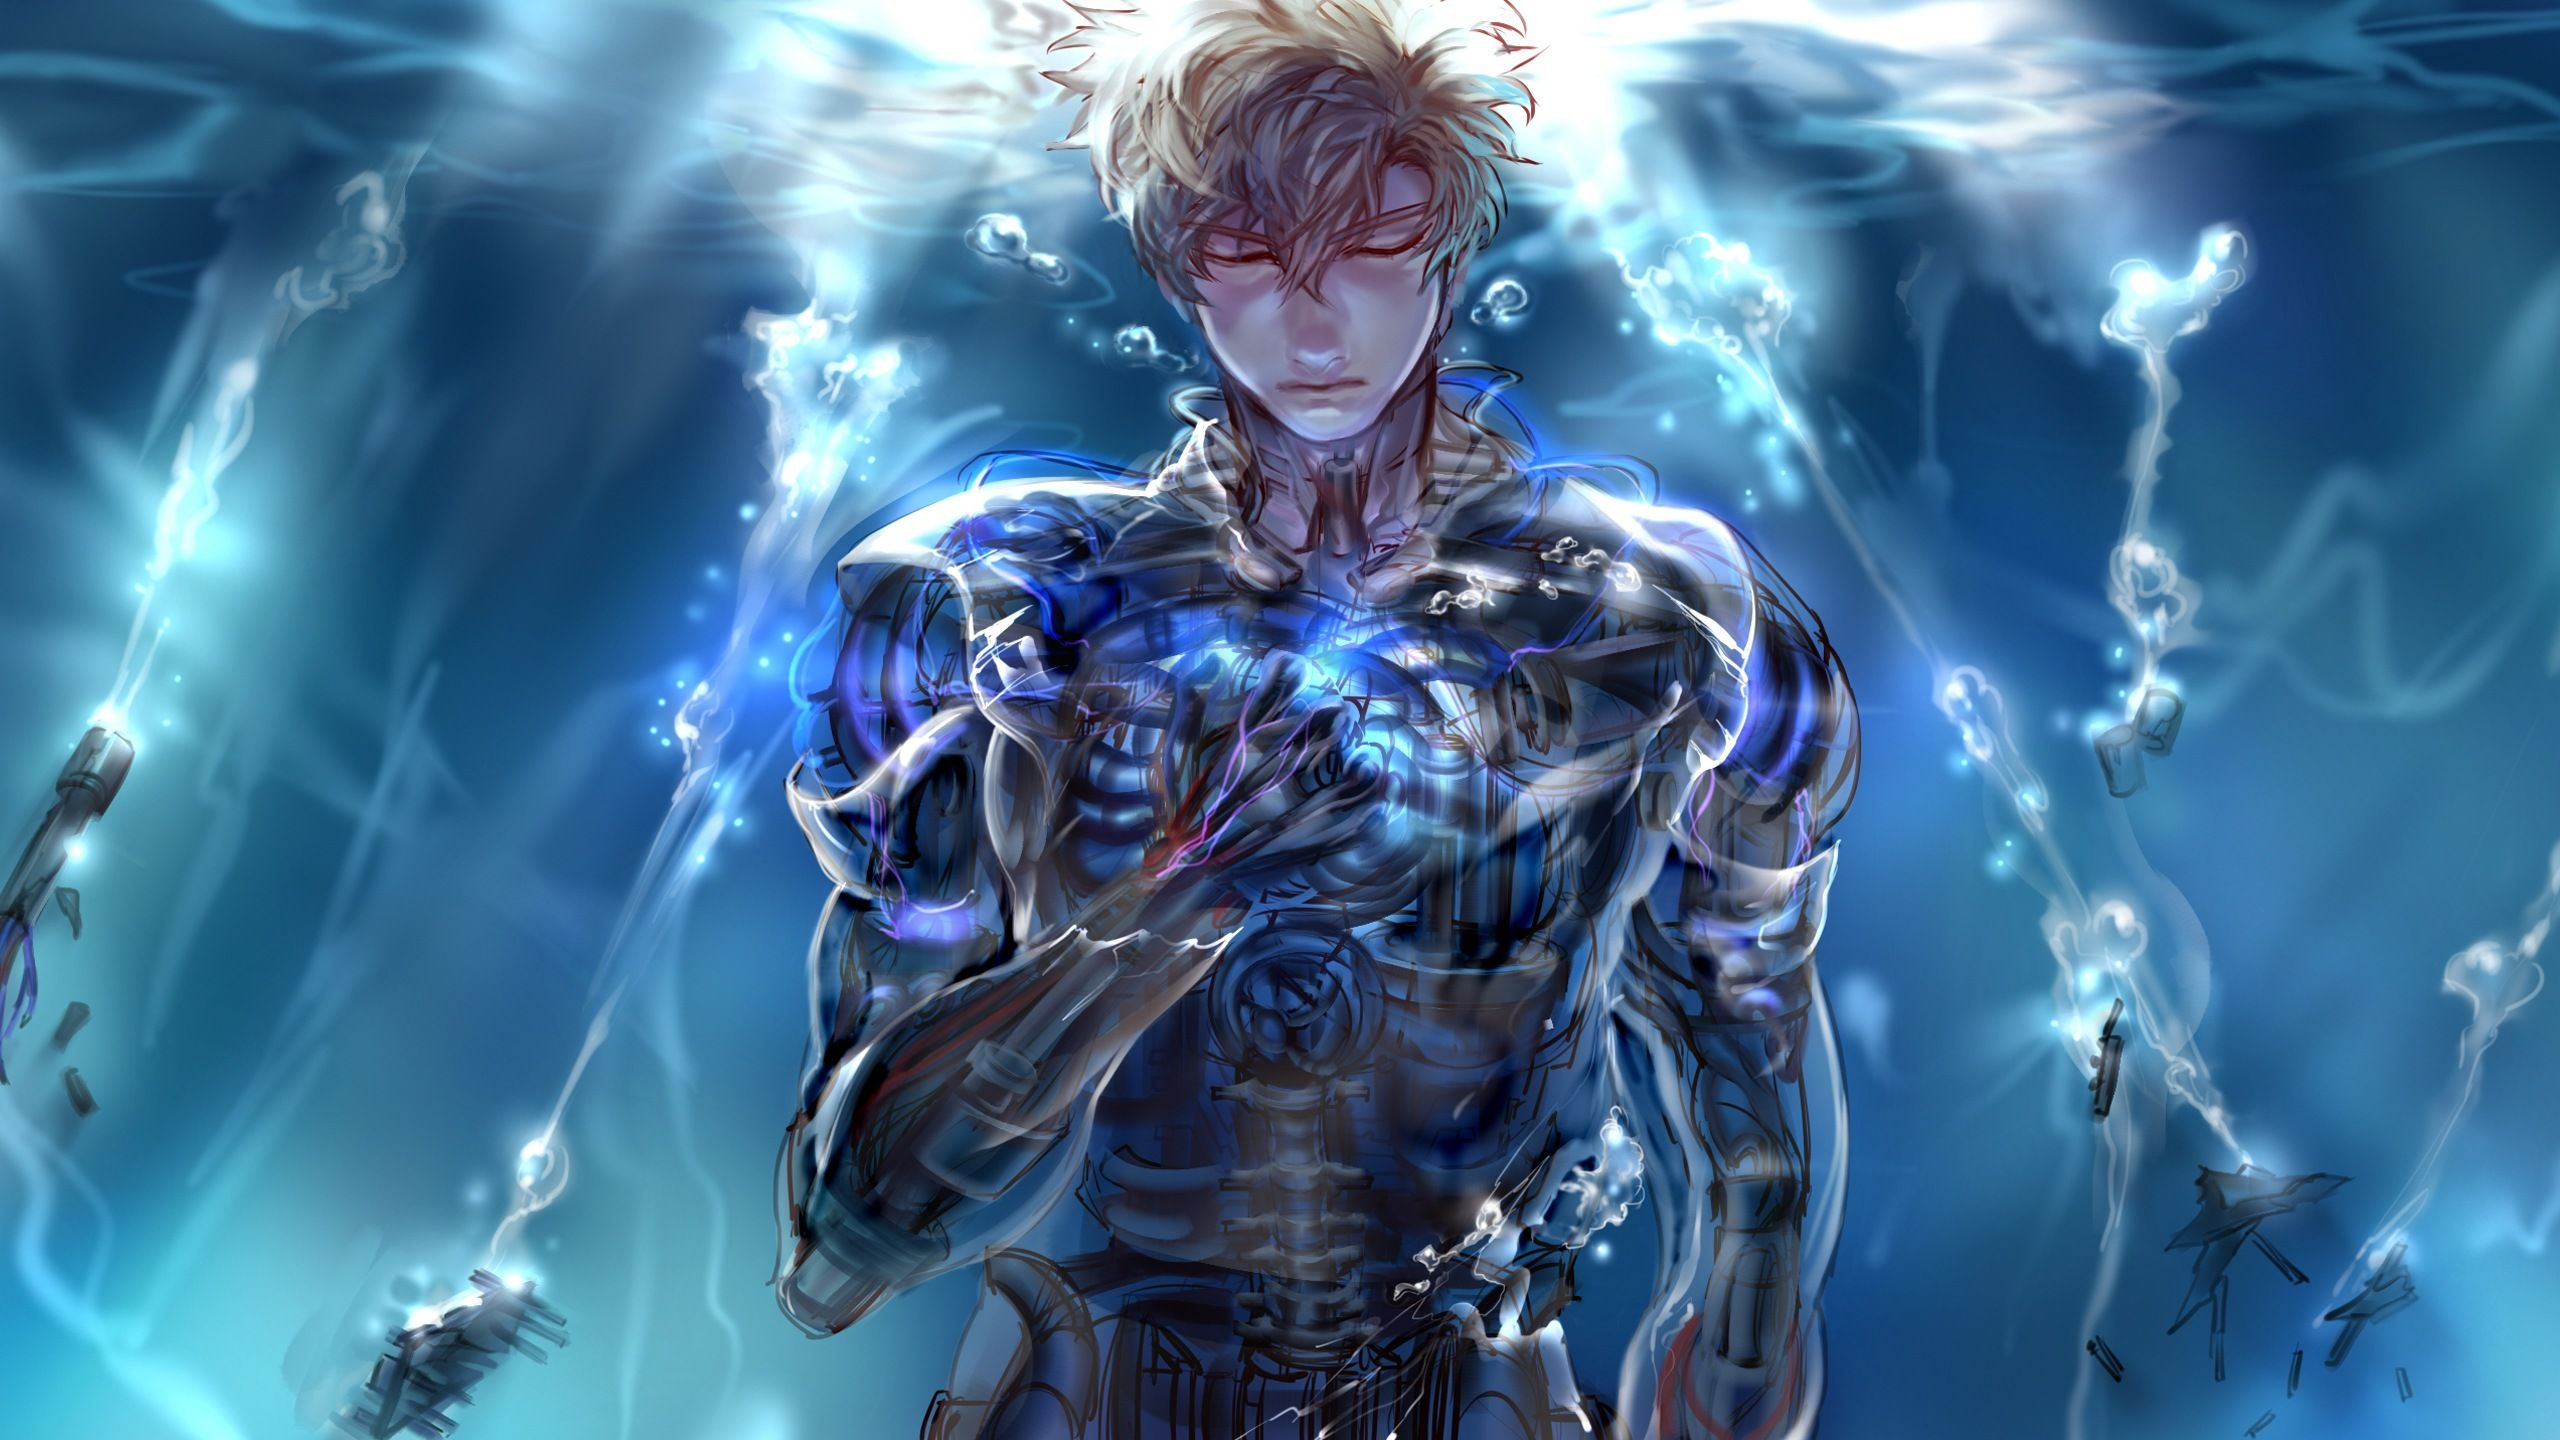 View, download, comment, and rate this 2560x1440 Genos